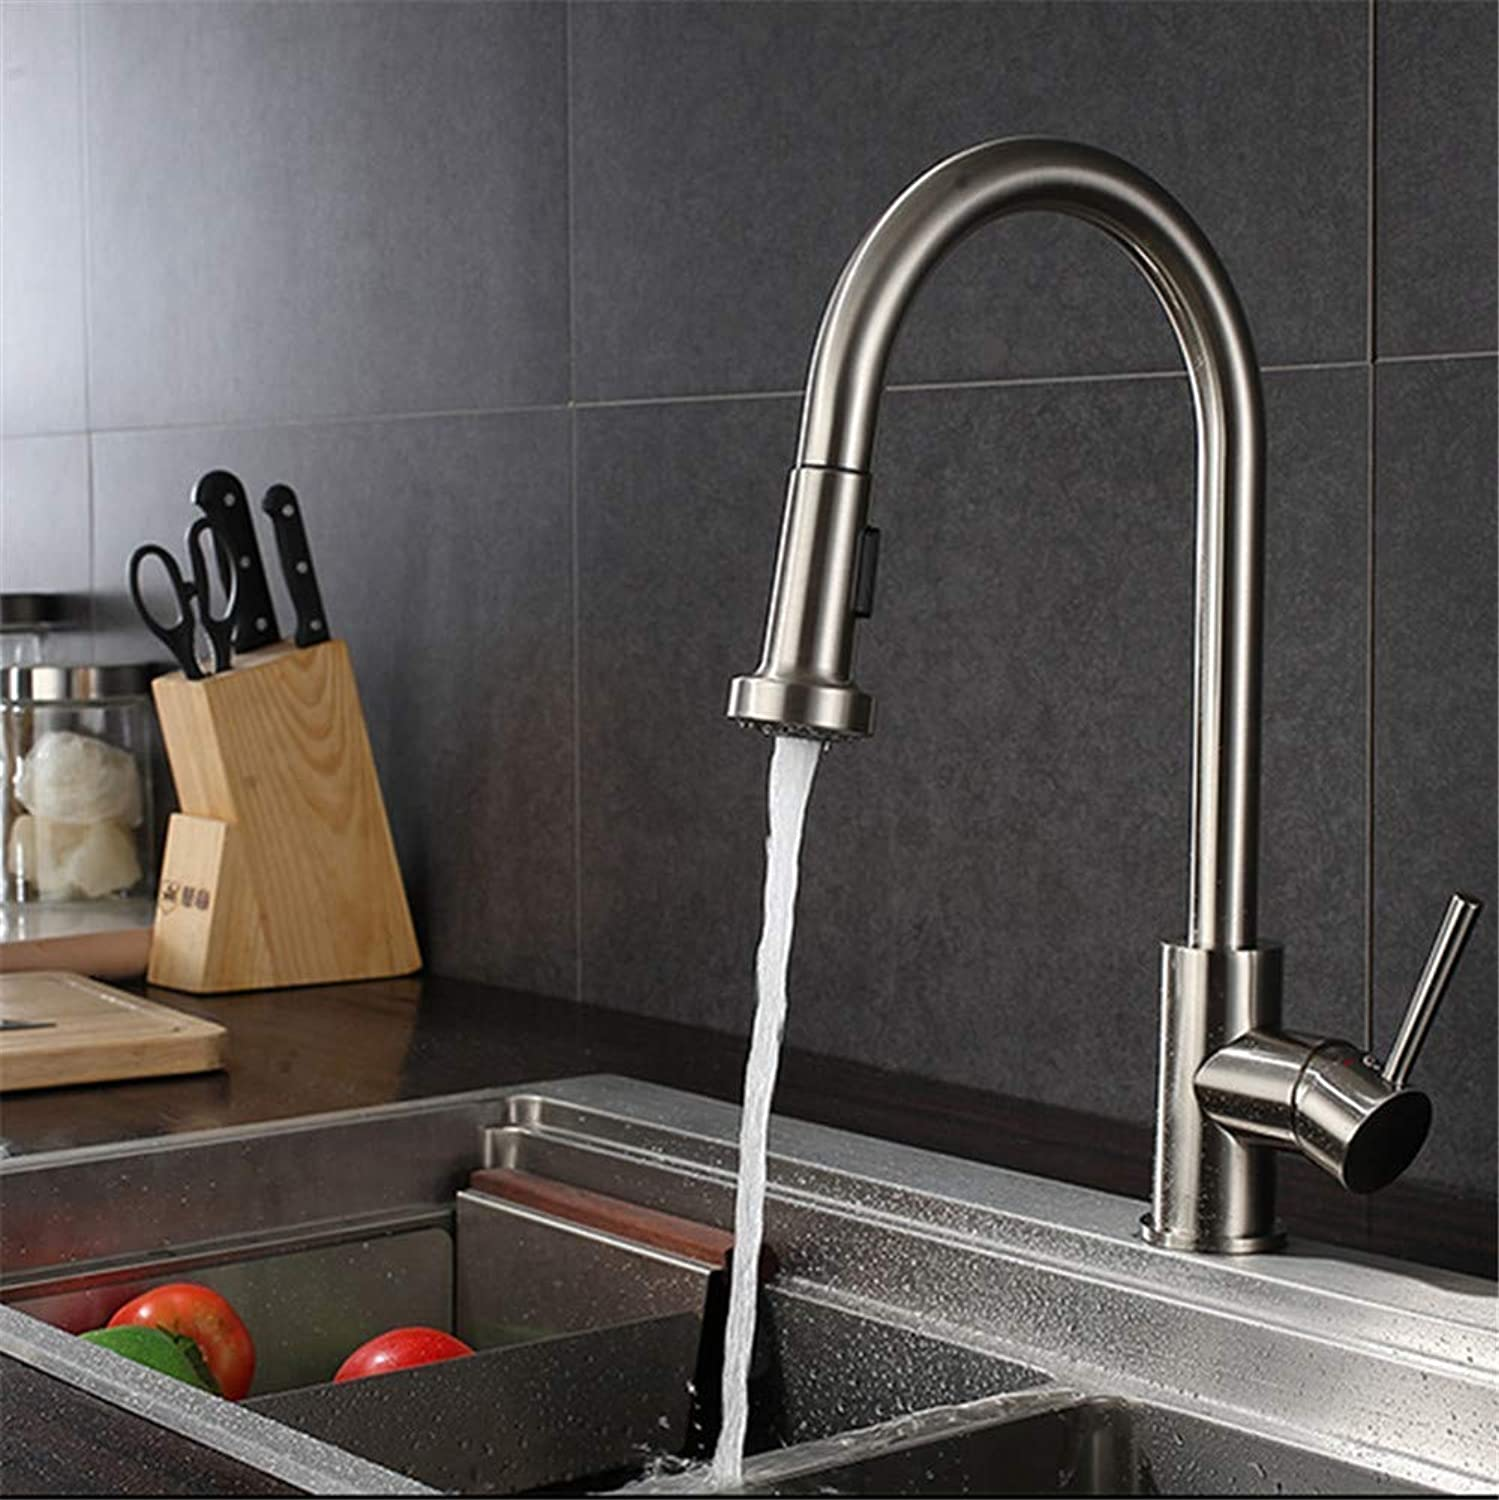 Oudan 304 Stainless Steel Pull-Out Kitchen Faucet Sink Faucet Lead Cold Sprinkling Head Flower VegetablesS65-UE6589321529 (color   -, Size   -)